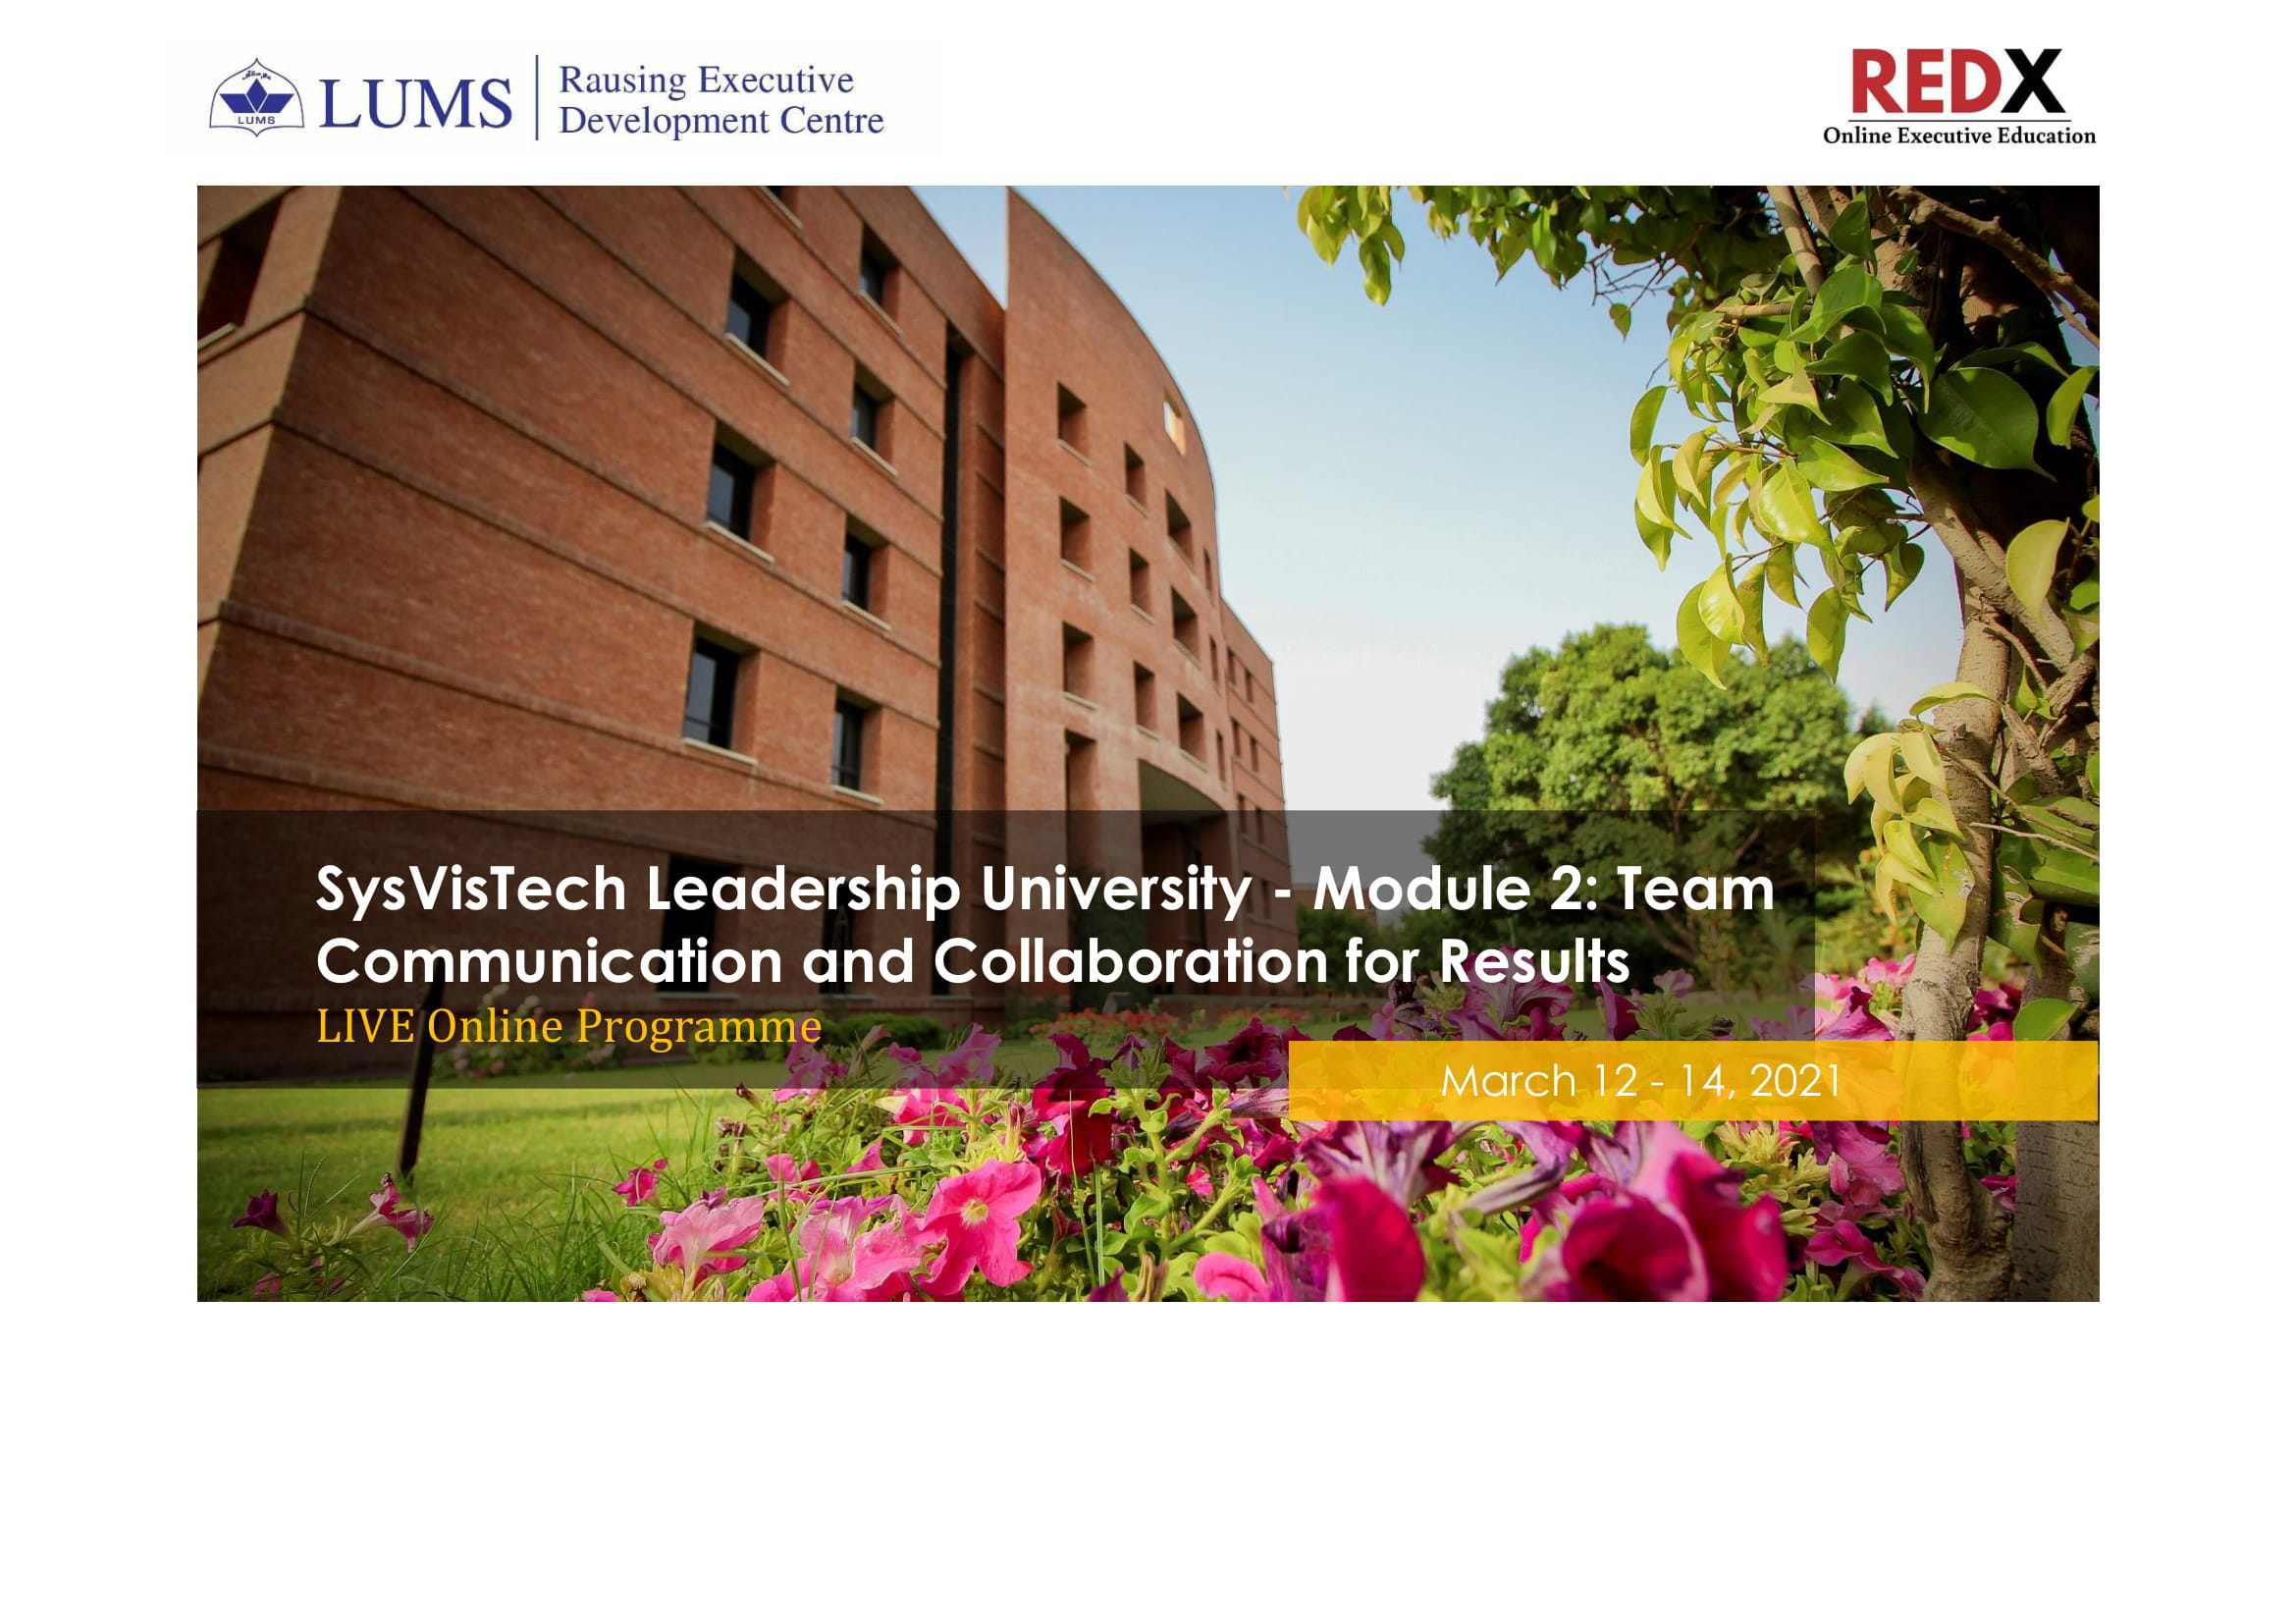 SysVisTech Leadership University - Module 2: Team Communication and Collaboration for Results